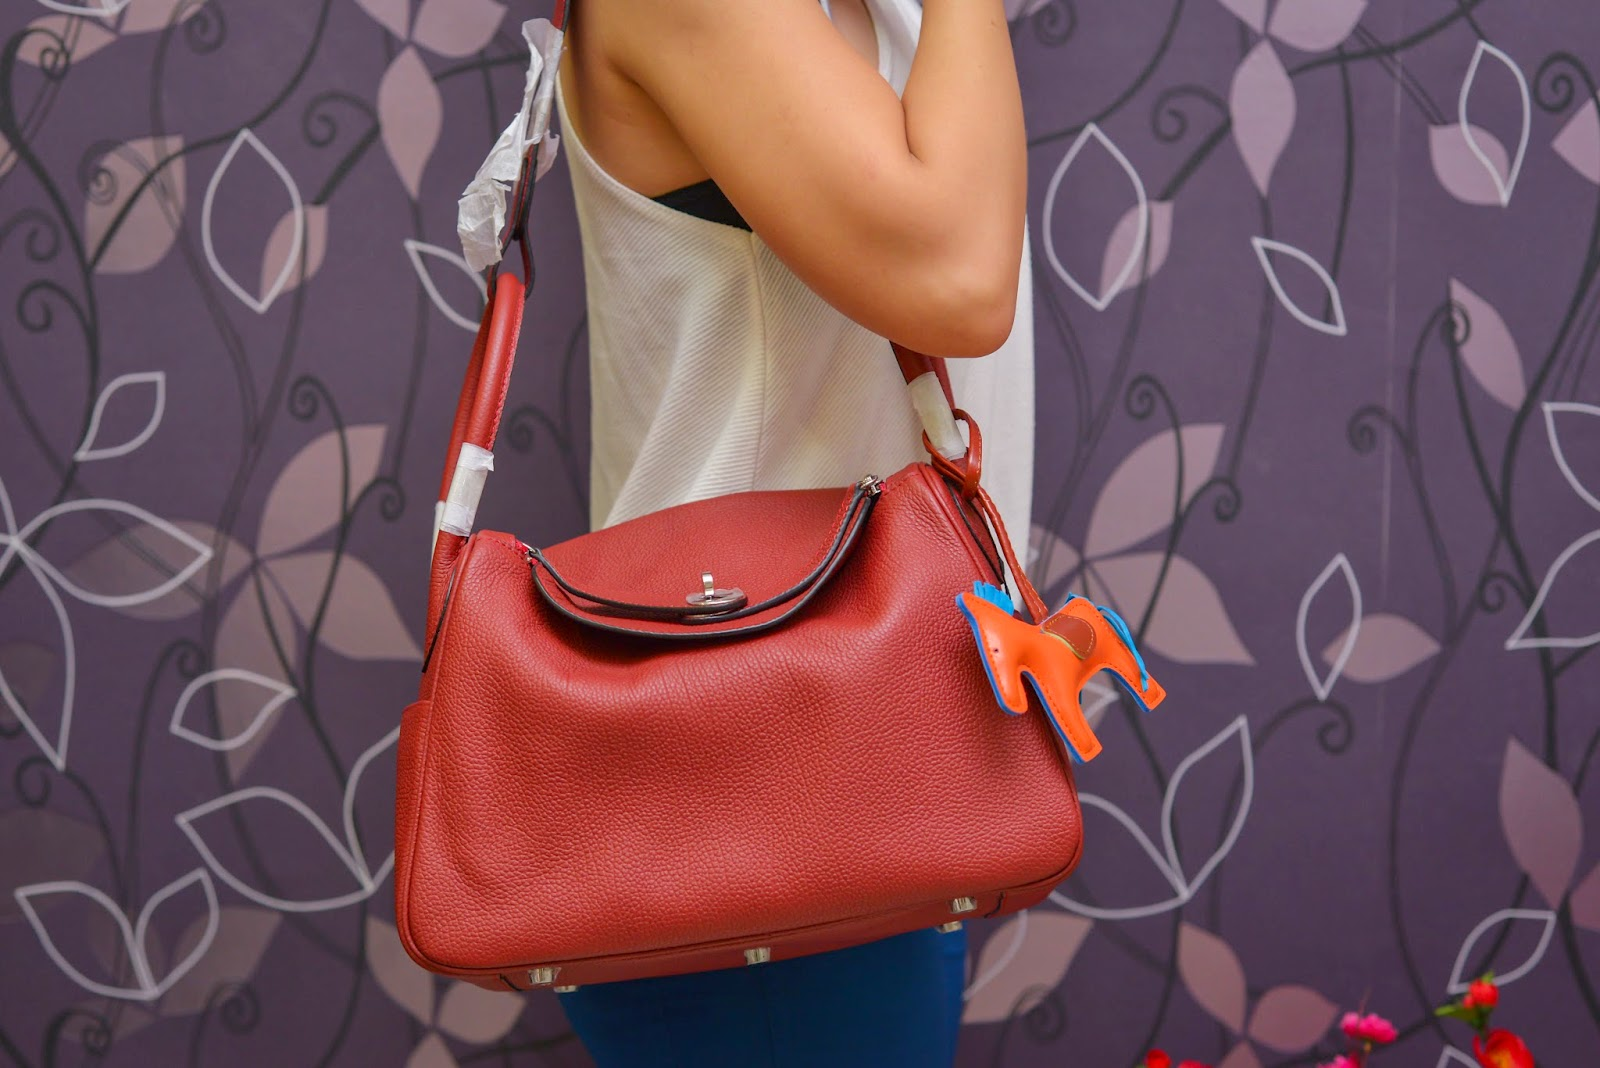 7f086c53b565 Product name   Hermes Garden Party 36. Color   Canvas Pink Approx  Measurement   14 X 10 X 7 inches